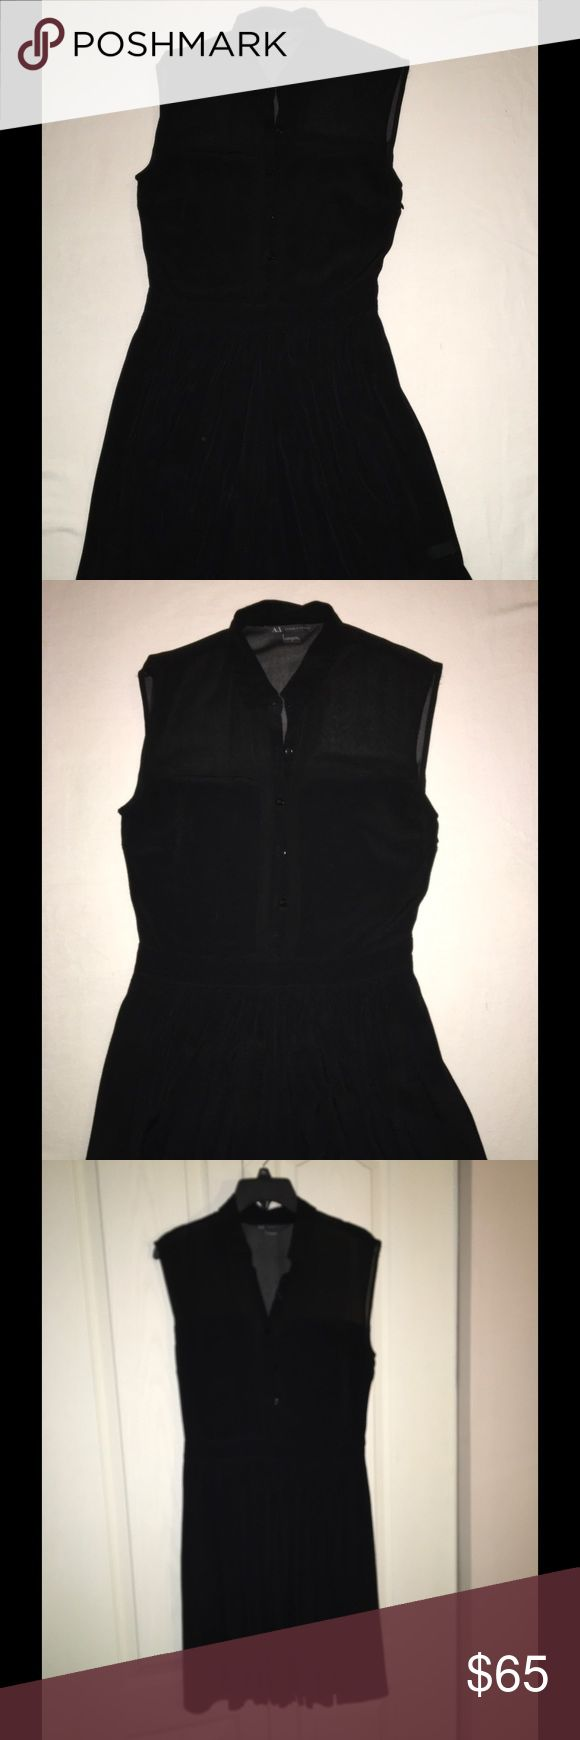 Dress by Armani Exchange Black swing dress with pockets, worn once for a photo shoot Armani Exchange Dresses